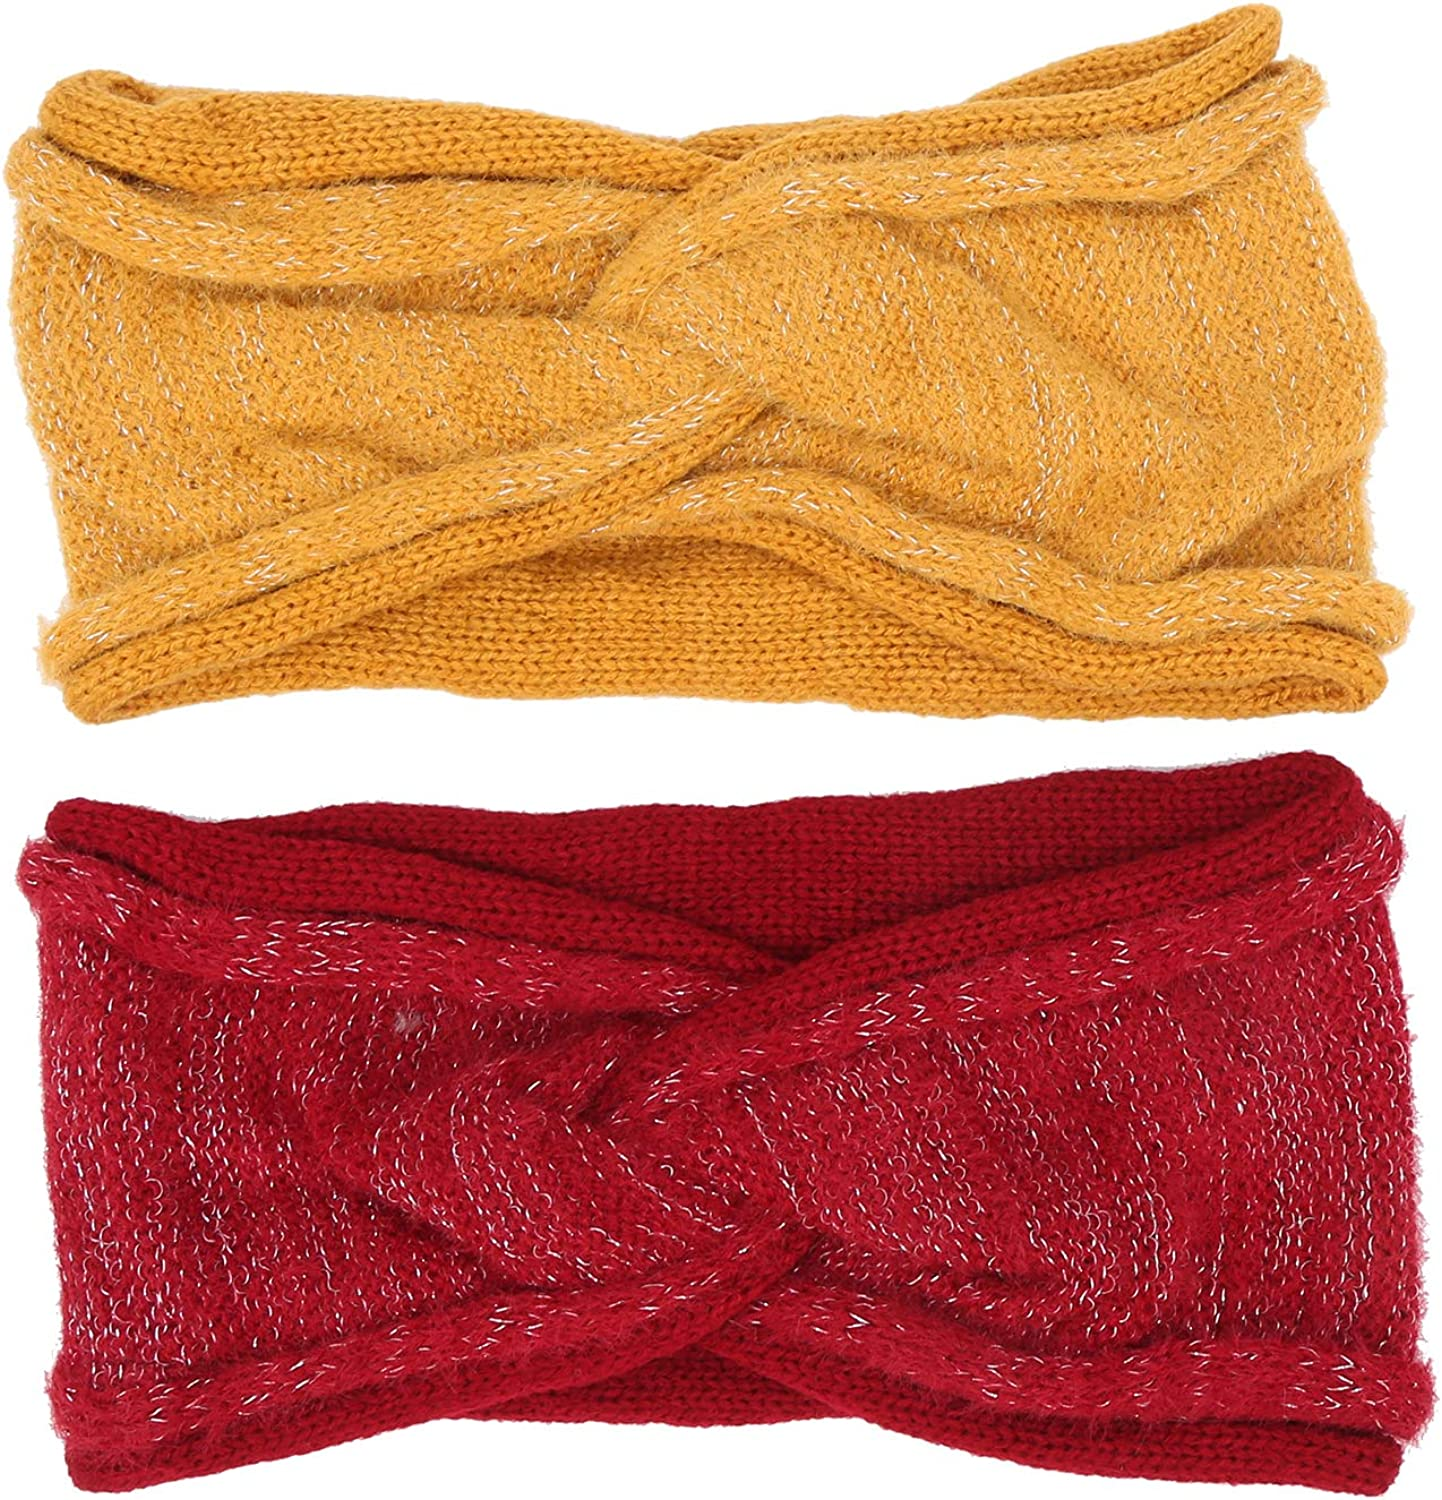 qing niao Women Elastic Headbands Lady Winter Warm Keeping Knitted Head Wraps Hair Accessories